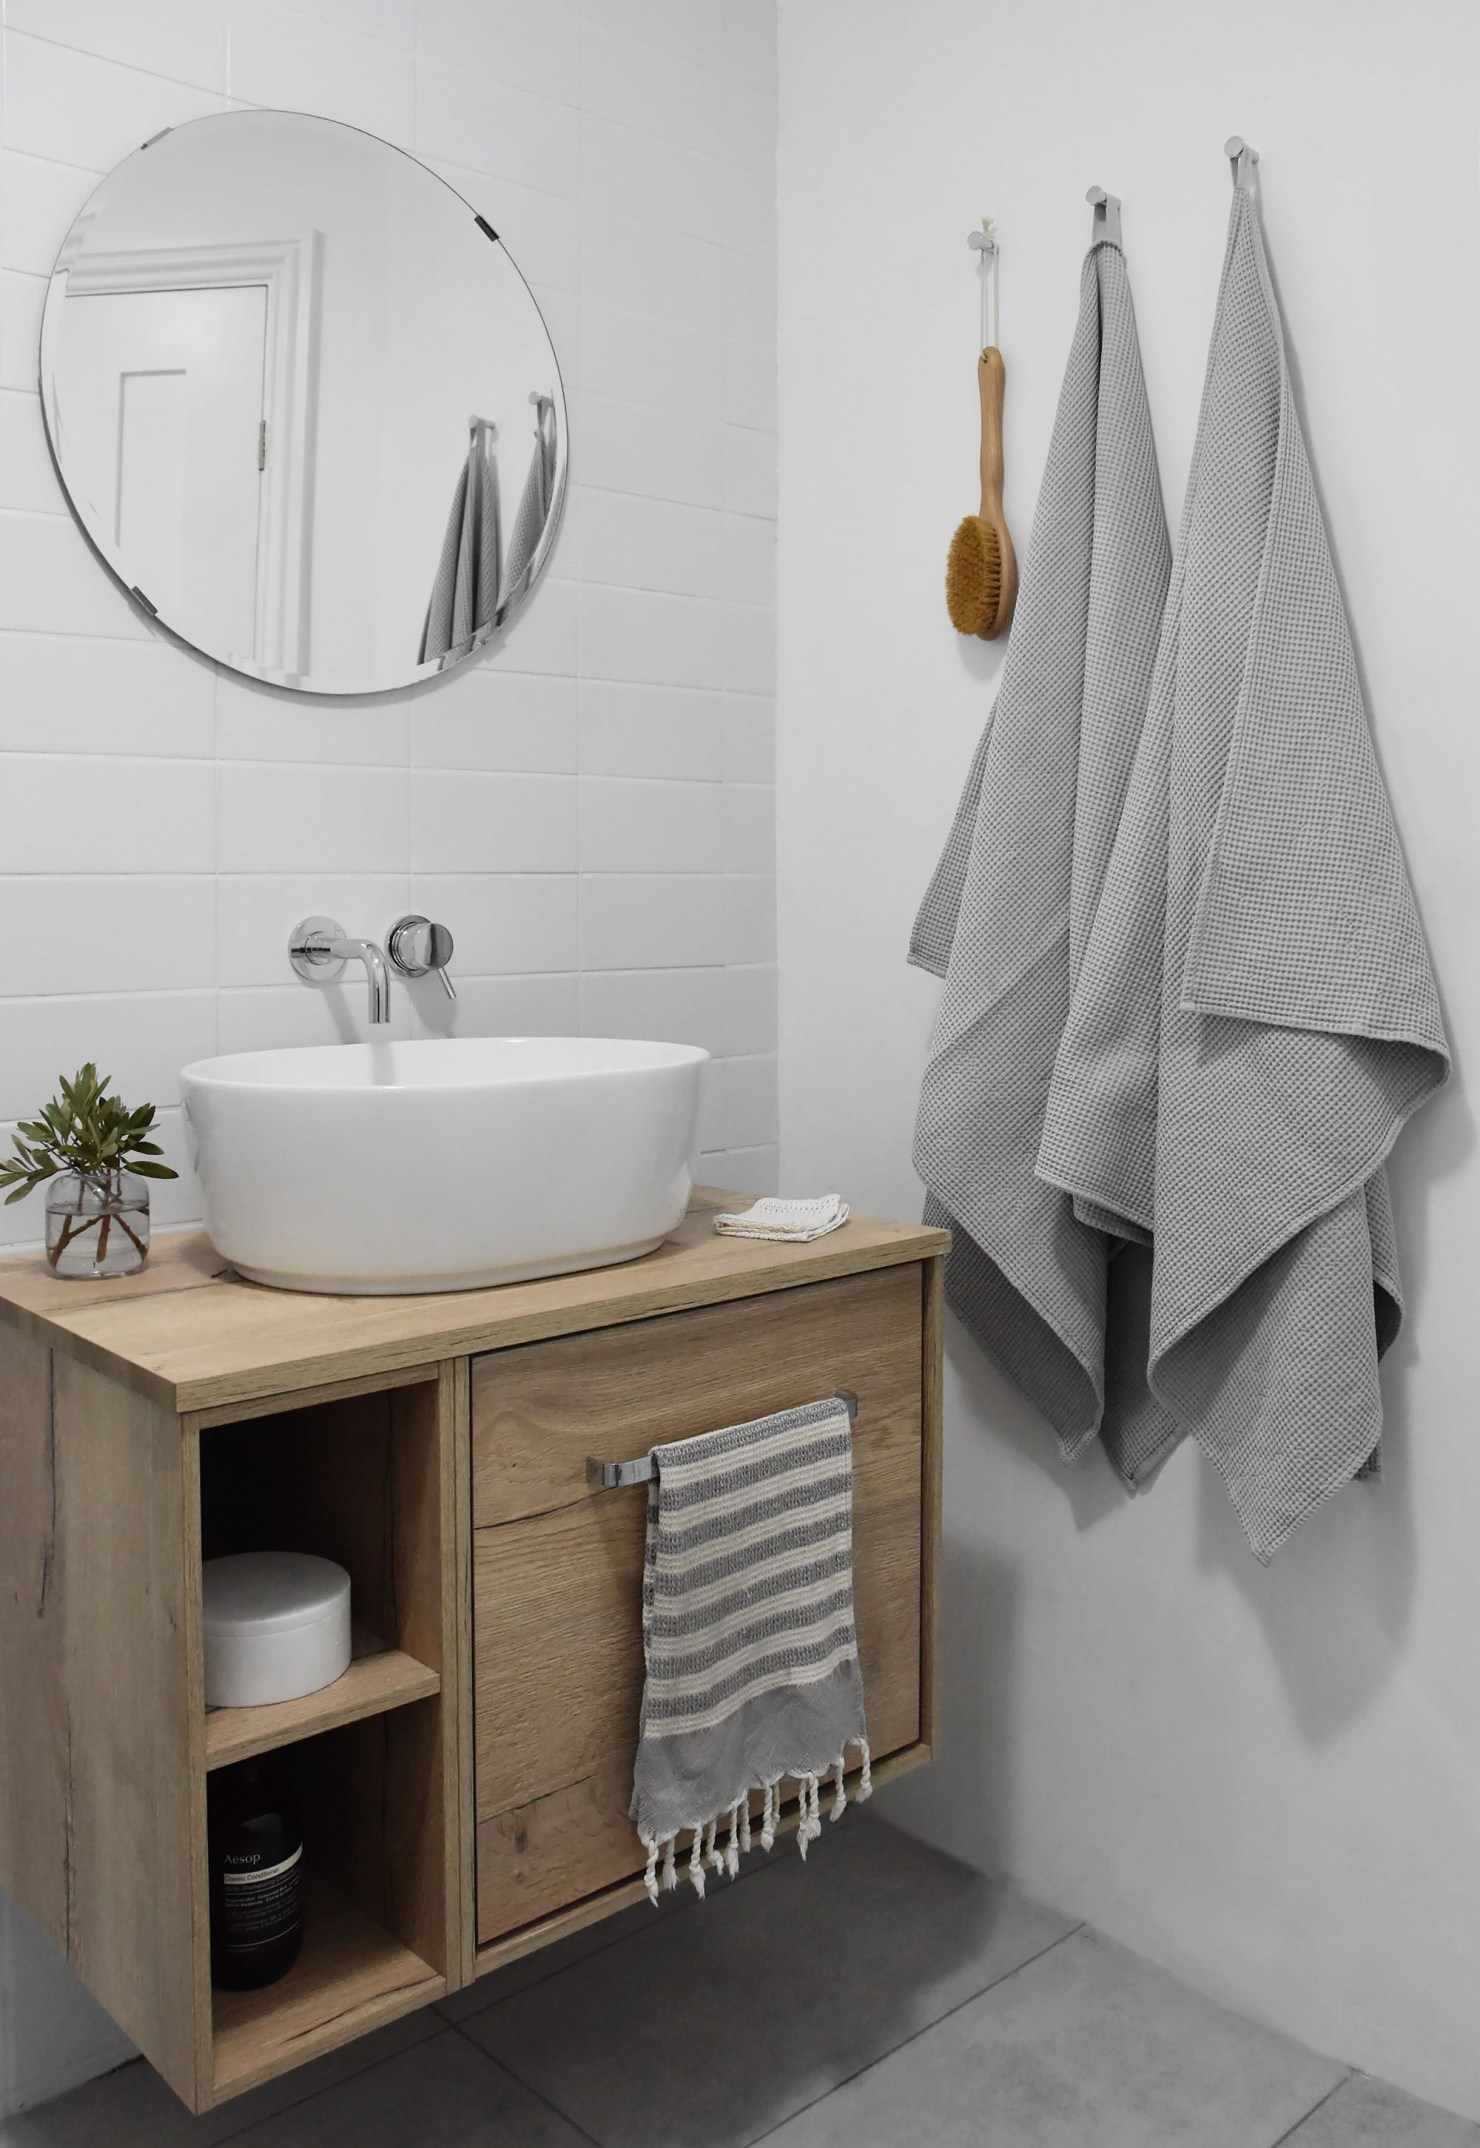 Contemporary minimalist bathroom with white metro tiles, oak vanity unit, countertop sink and circular mirror   How to design a lighting scheme that works for you   These Four Walls blog